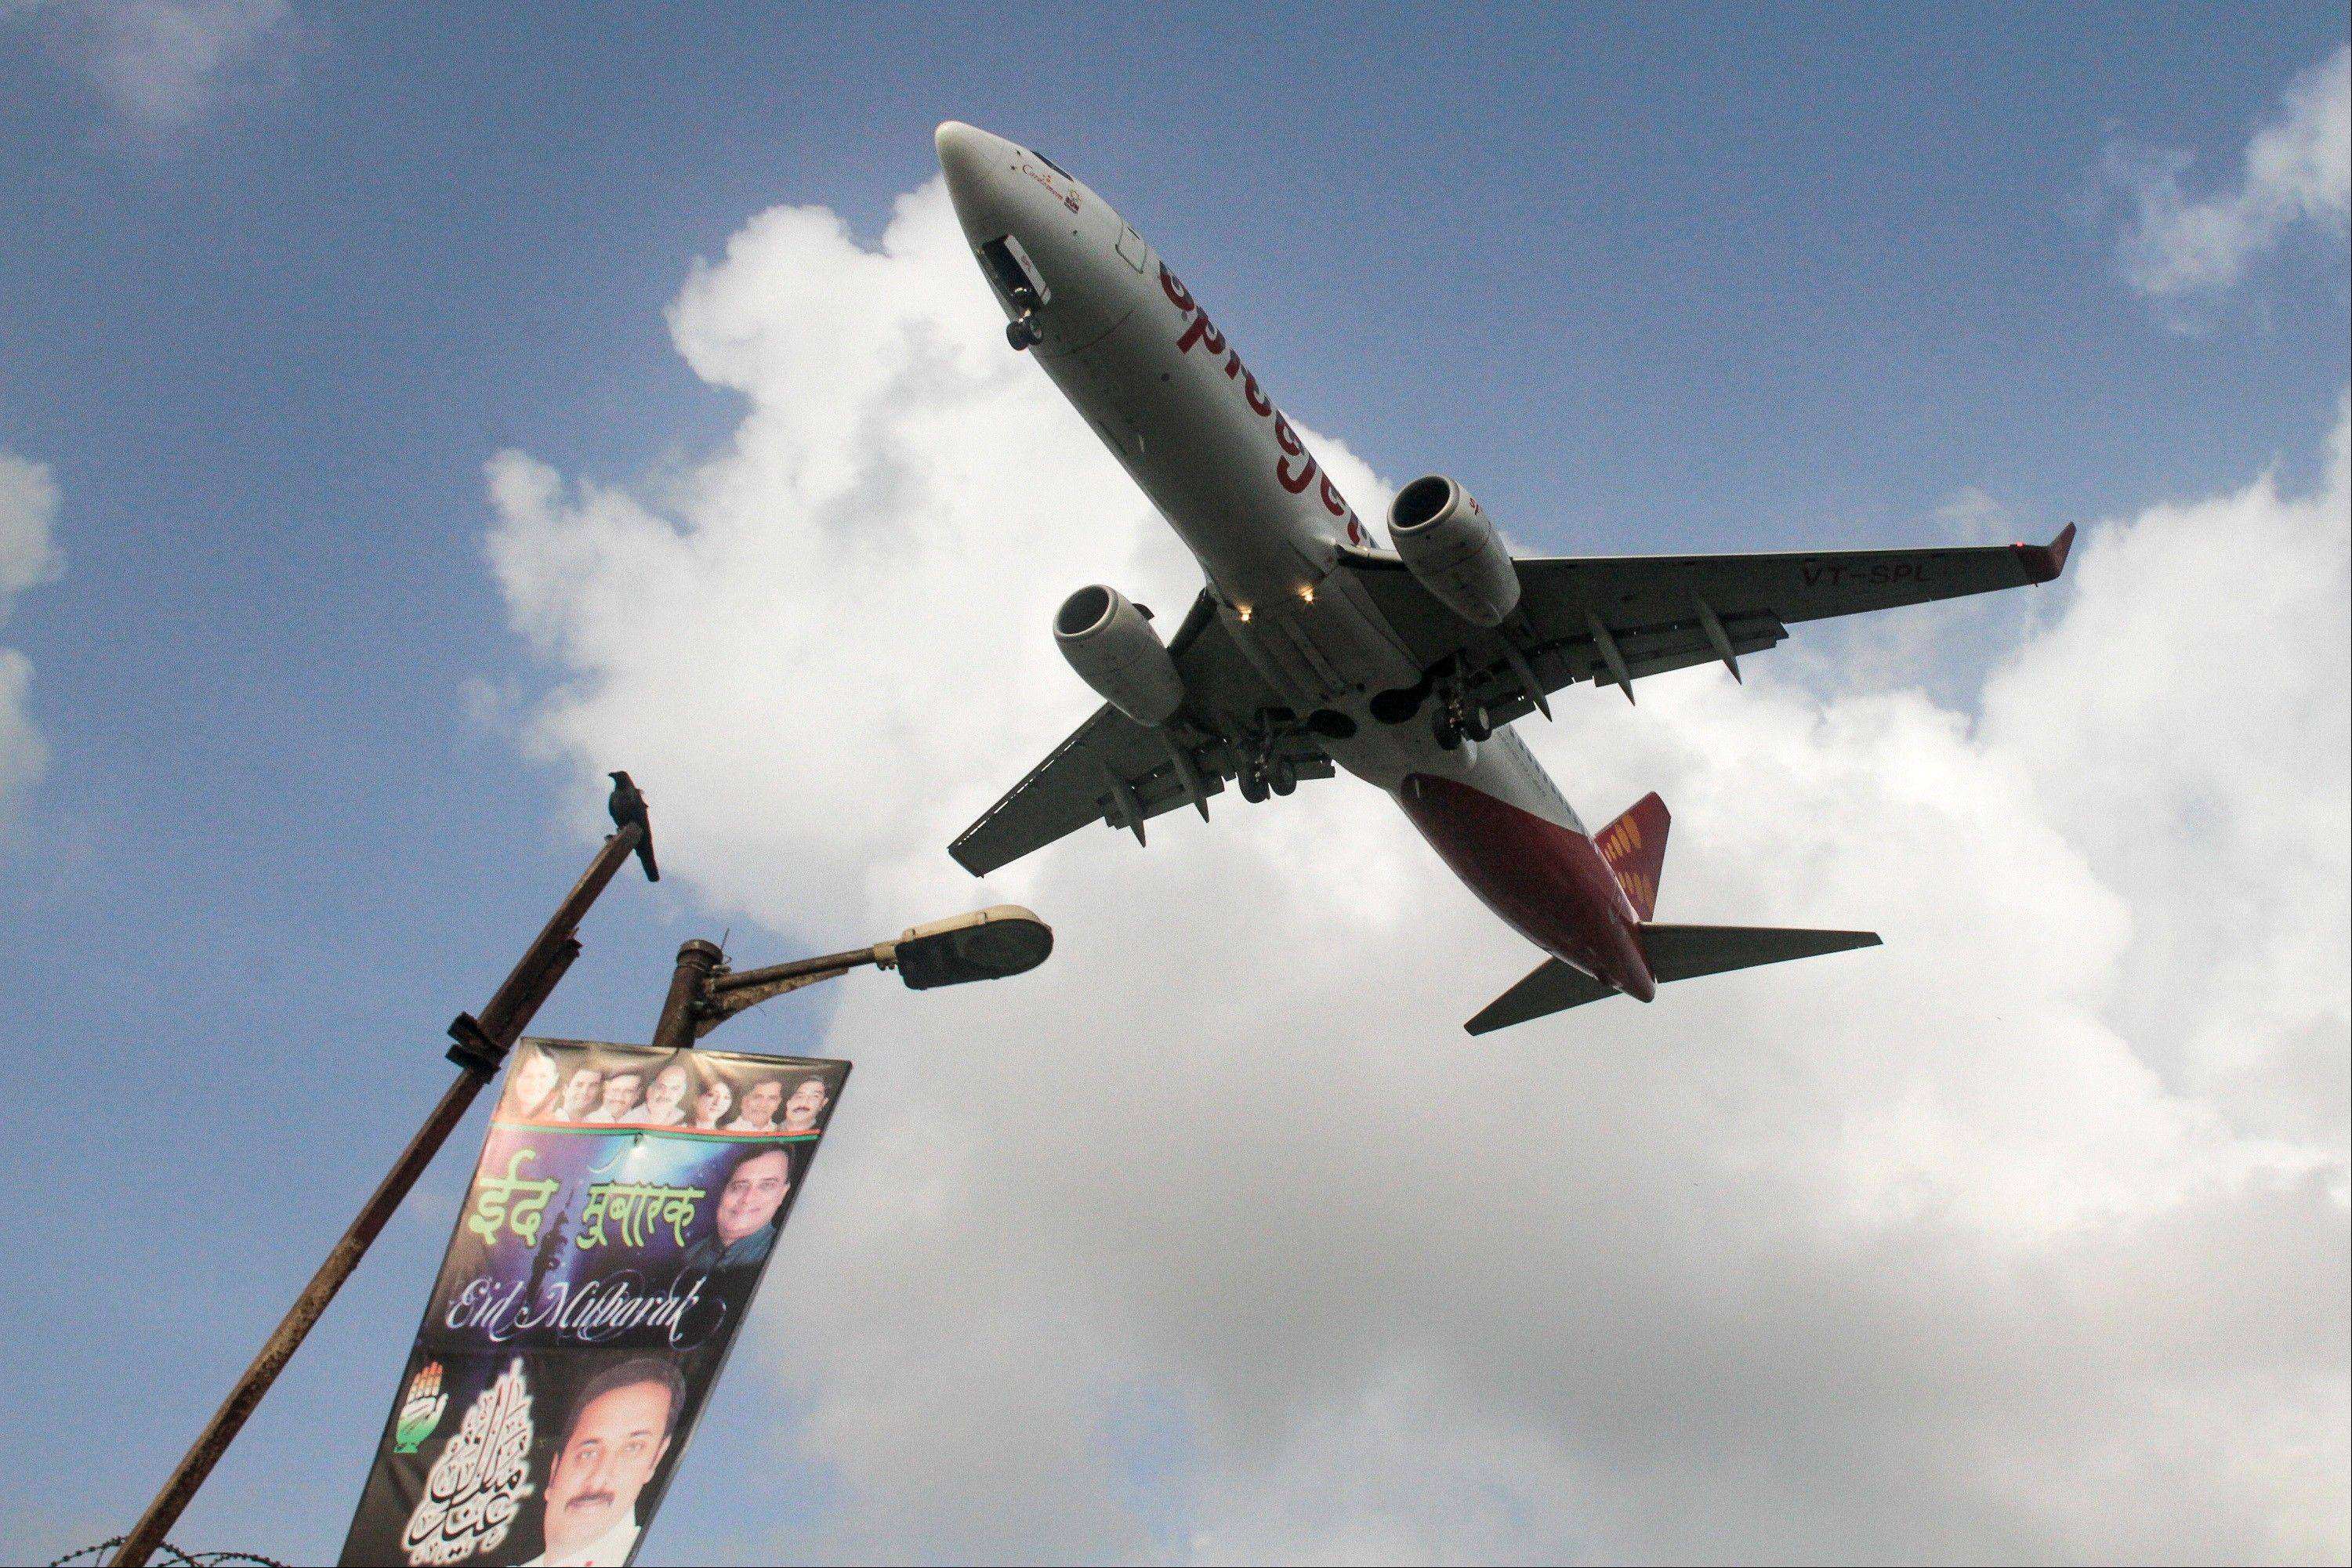 Airlines: 2013 profits to rise thanks to cost cuts